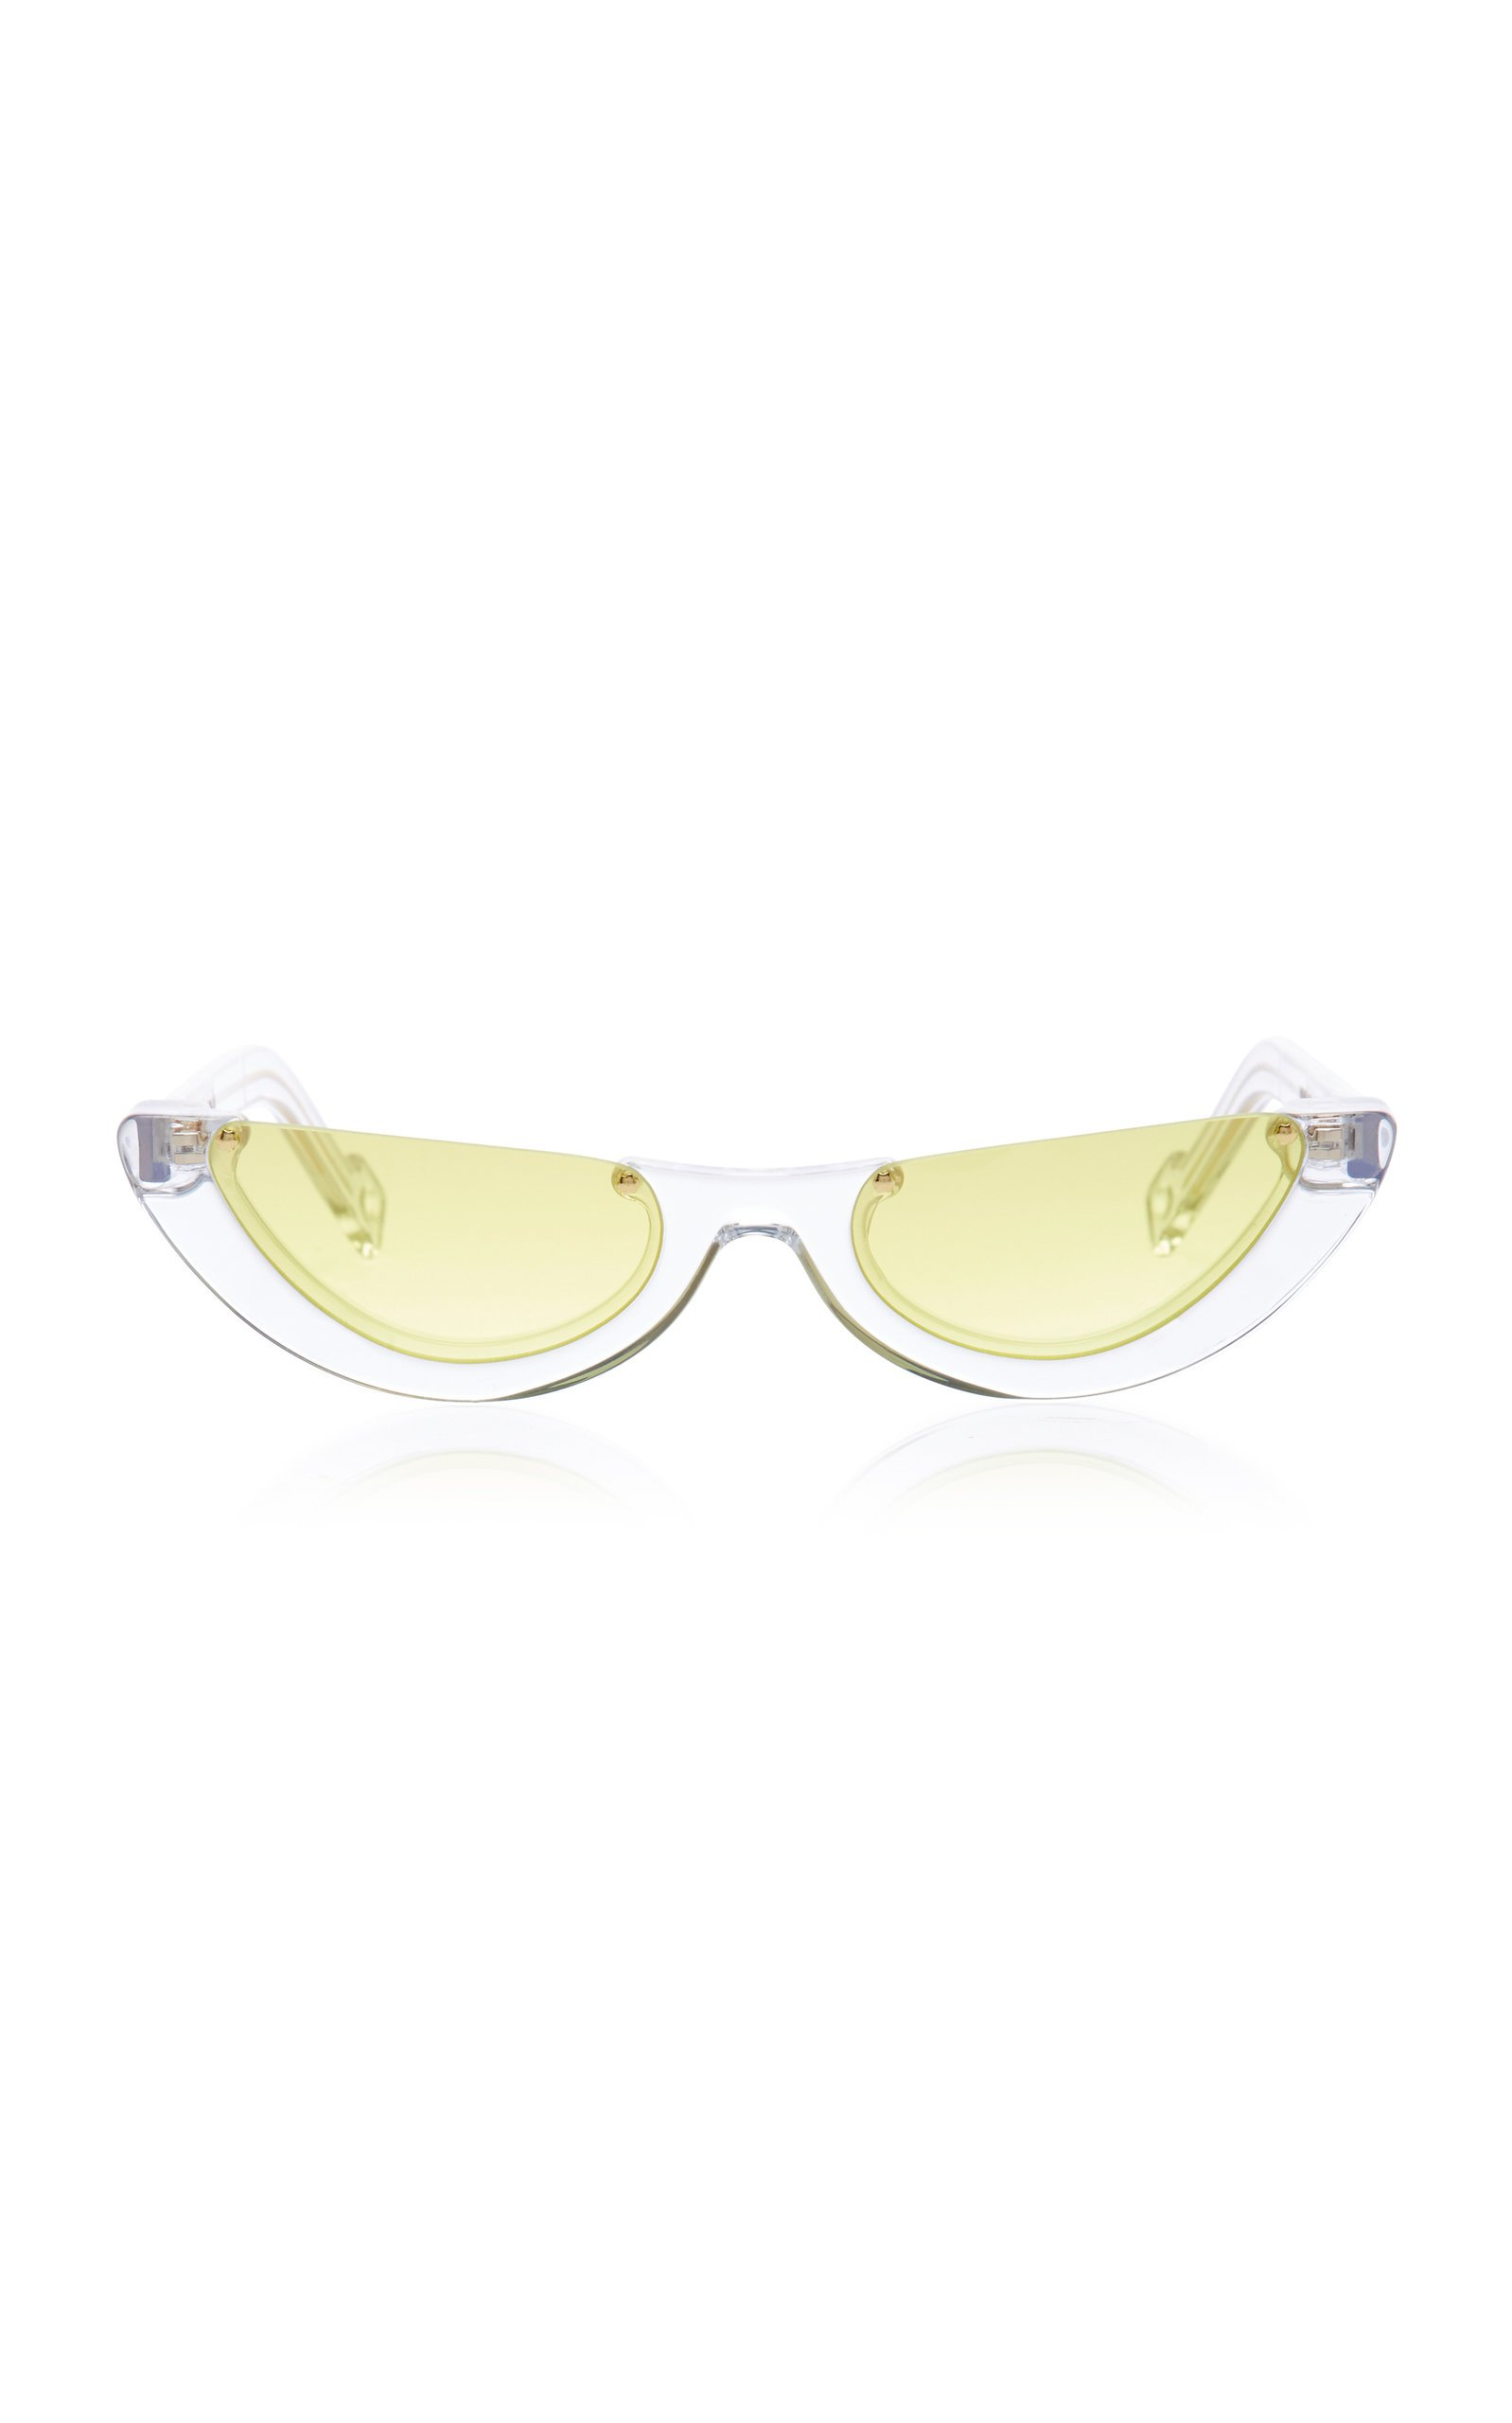 PAWAKA Empat Cat-Eye Acetate Sunglasses